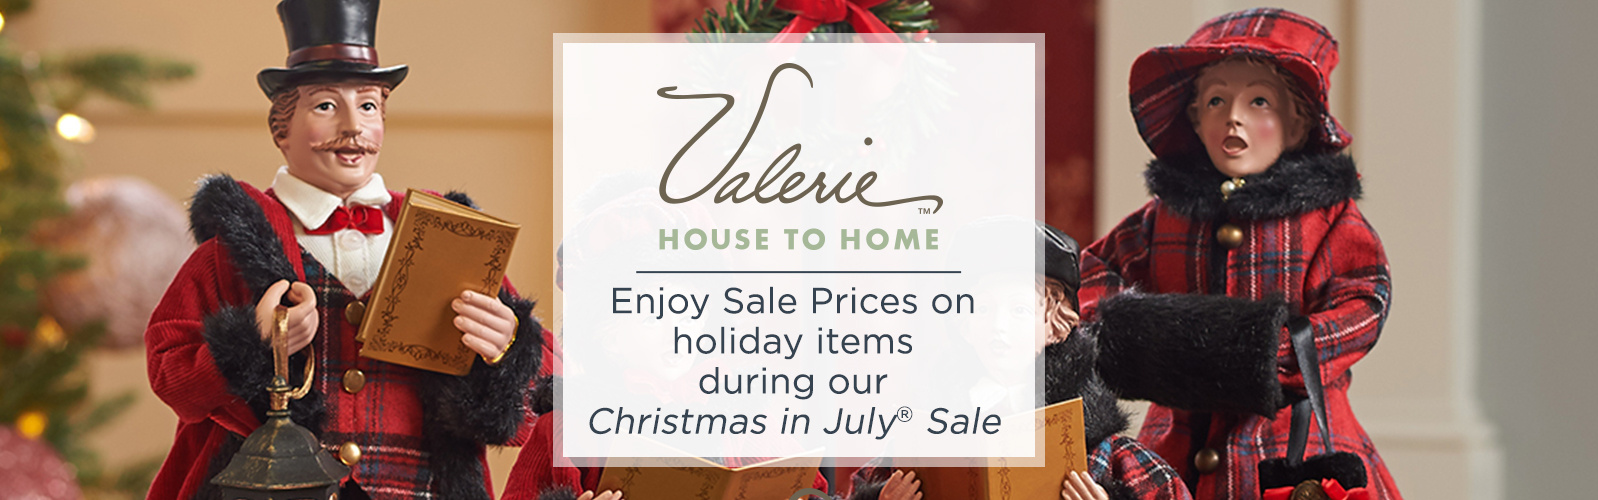 Valerie House to Home. Enjoy Sale Prices on holiday items during our Christmas in July® Sale